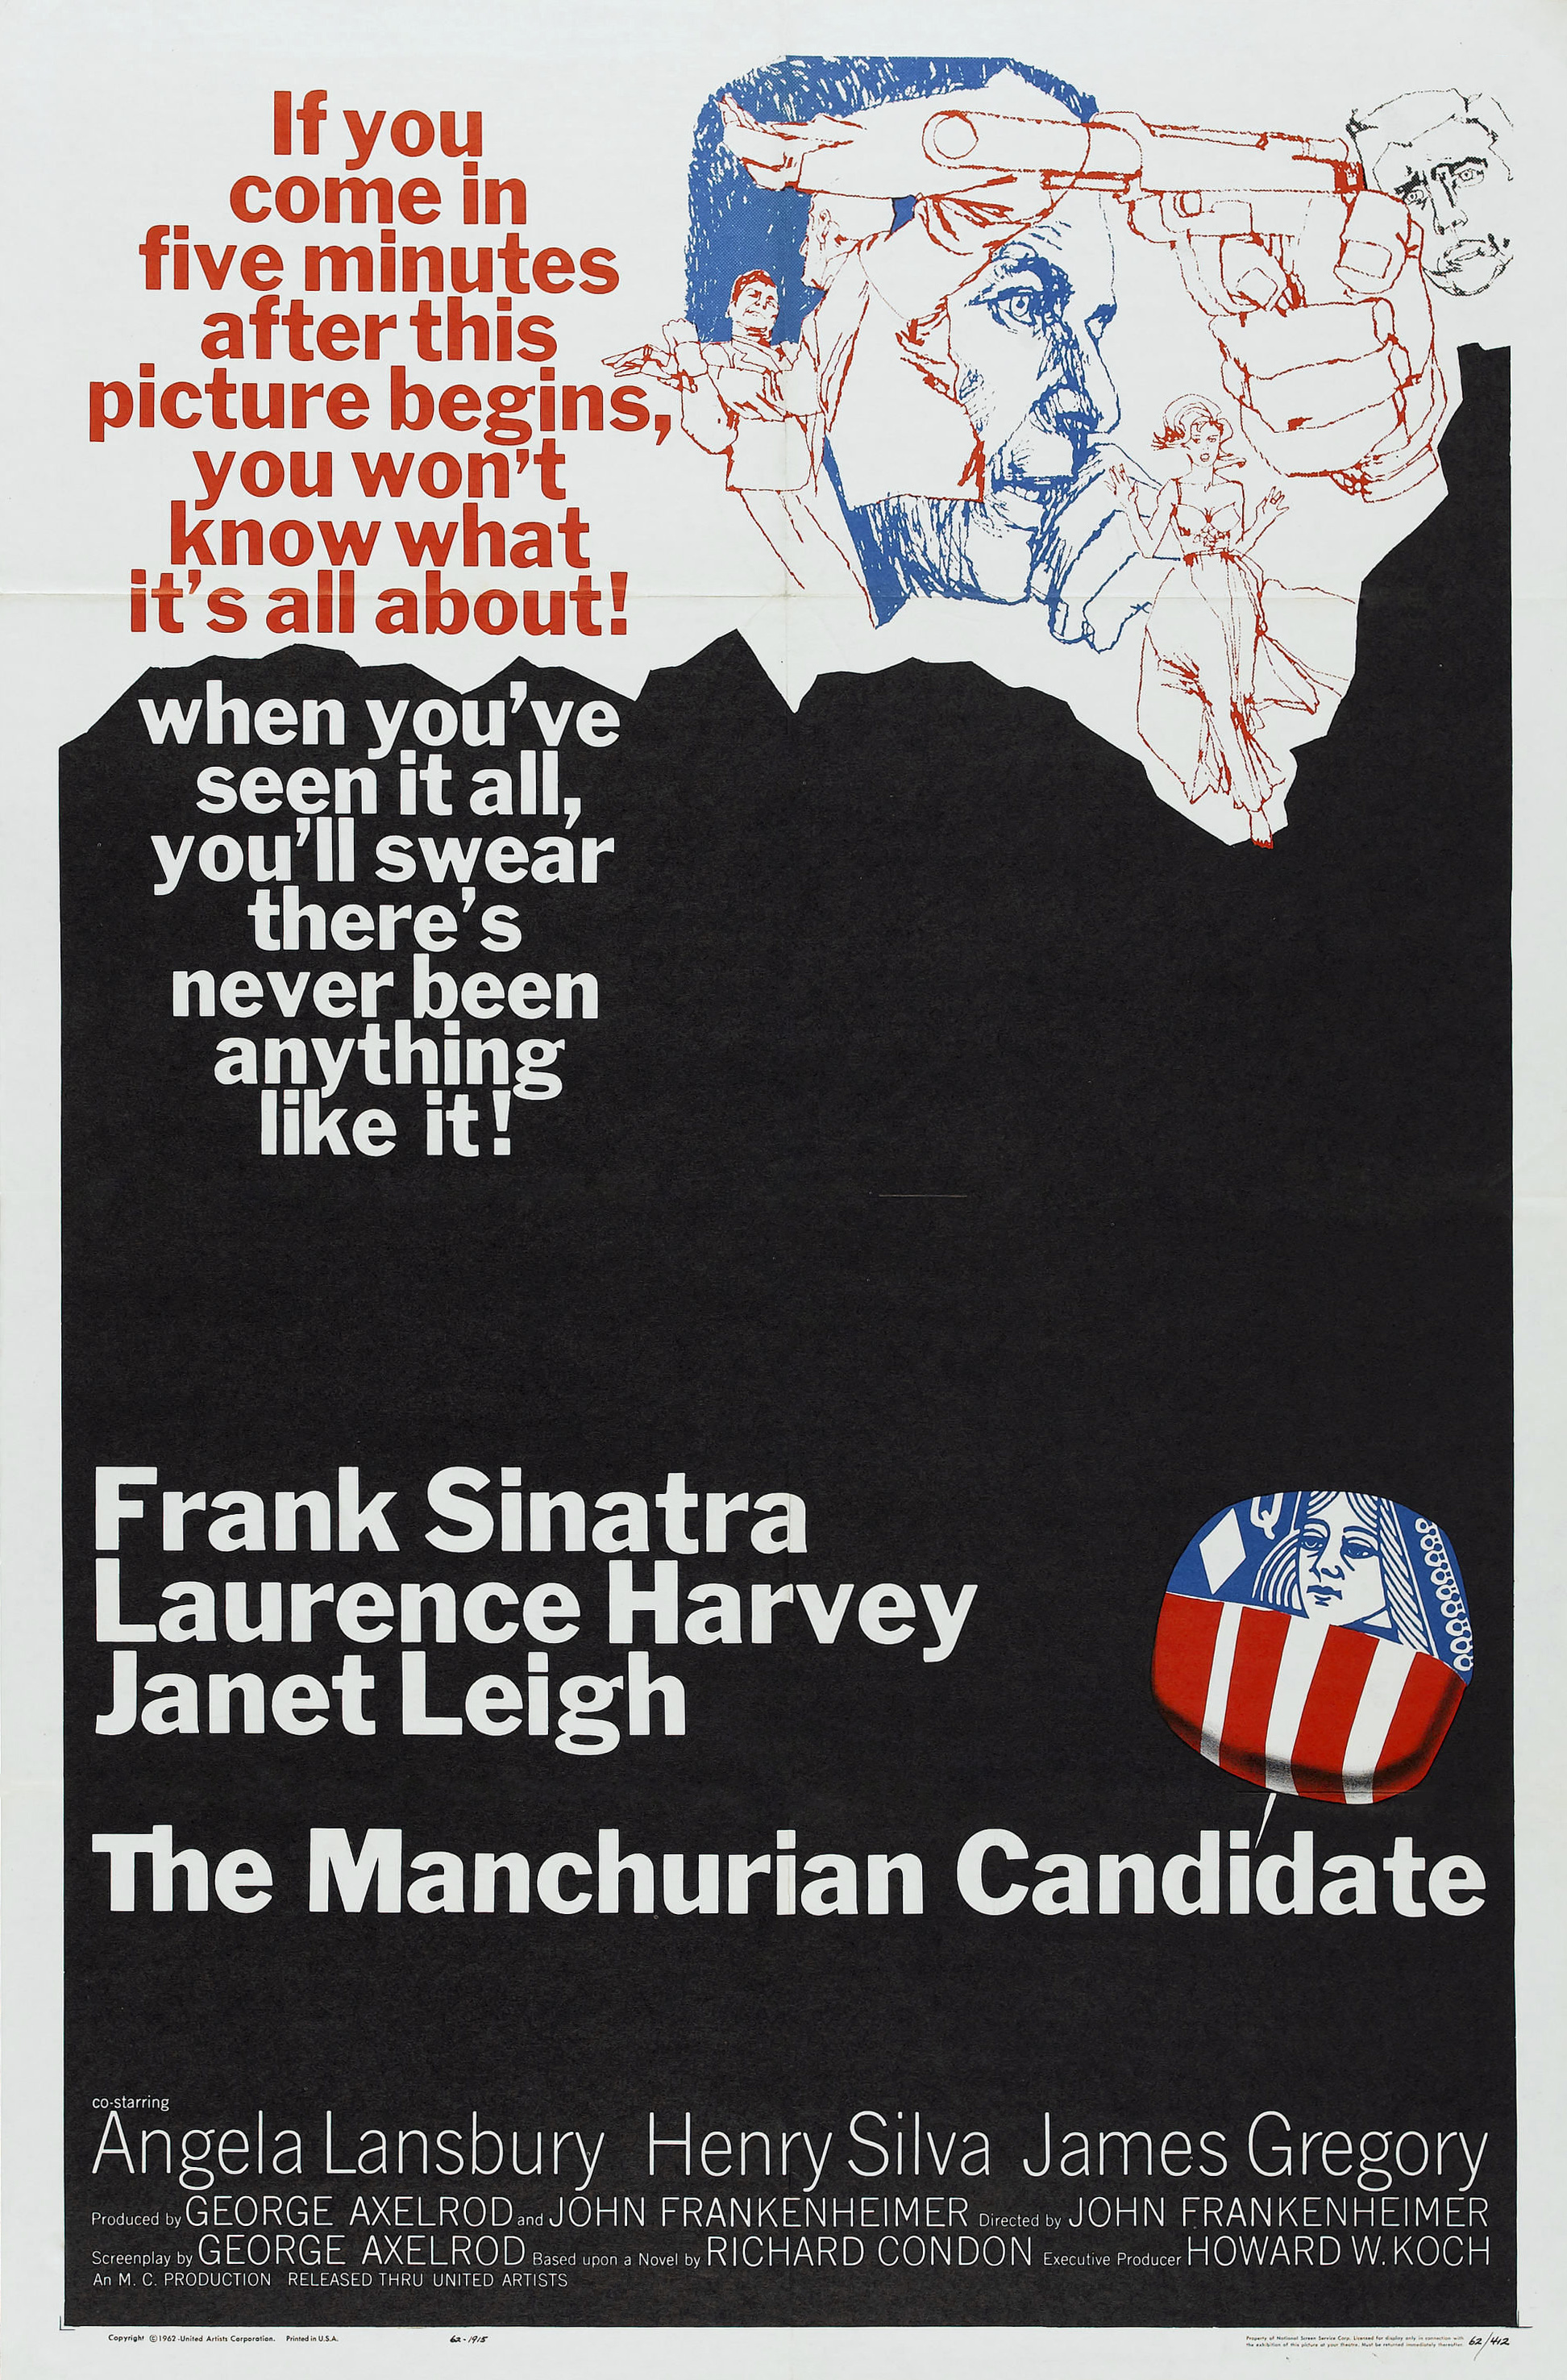 http://www.doctormacro.com/Images/Posters/M/Poster%20-%20Manchurian%20Candidate,%20The_01.jpg